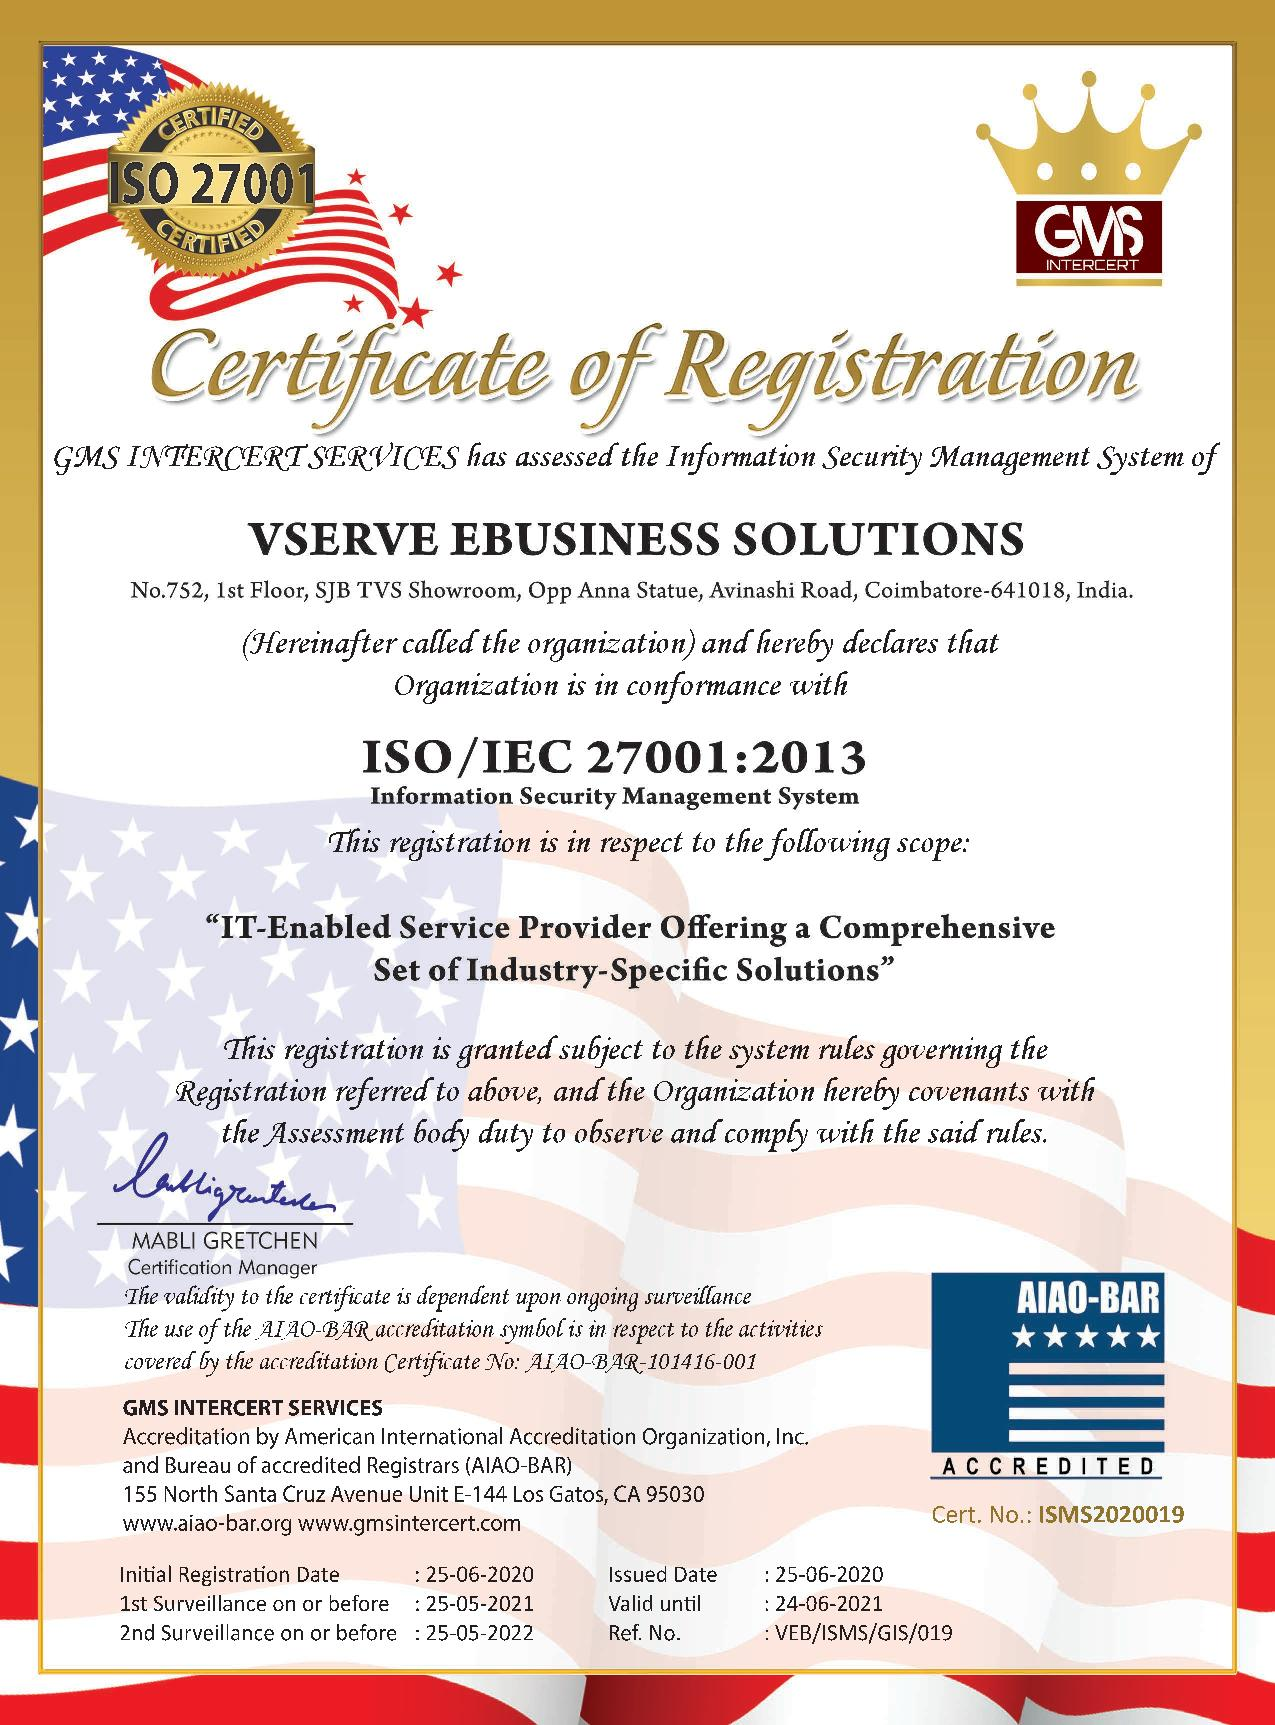 Vserve is a ISO/IEC 27001:2013